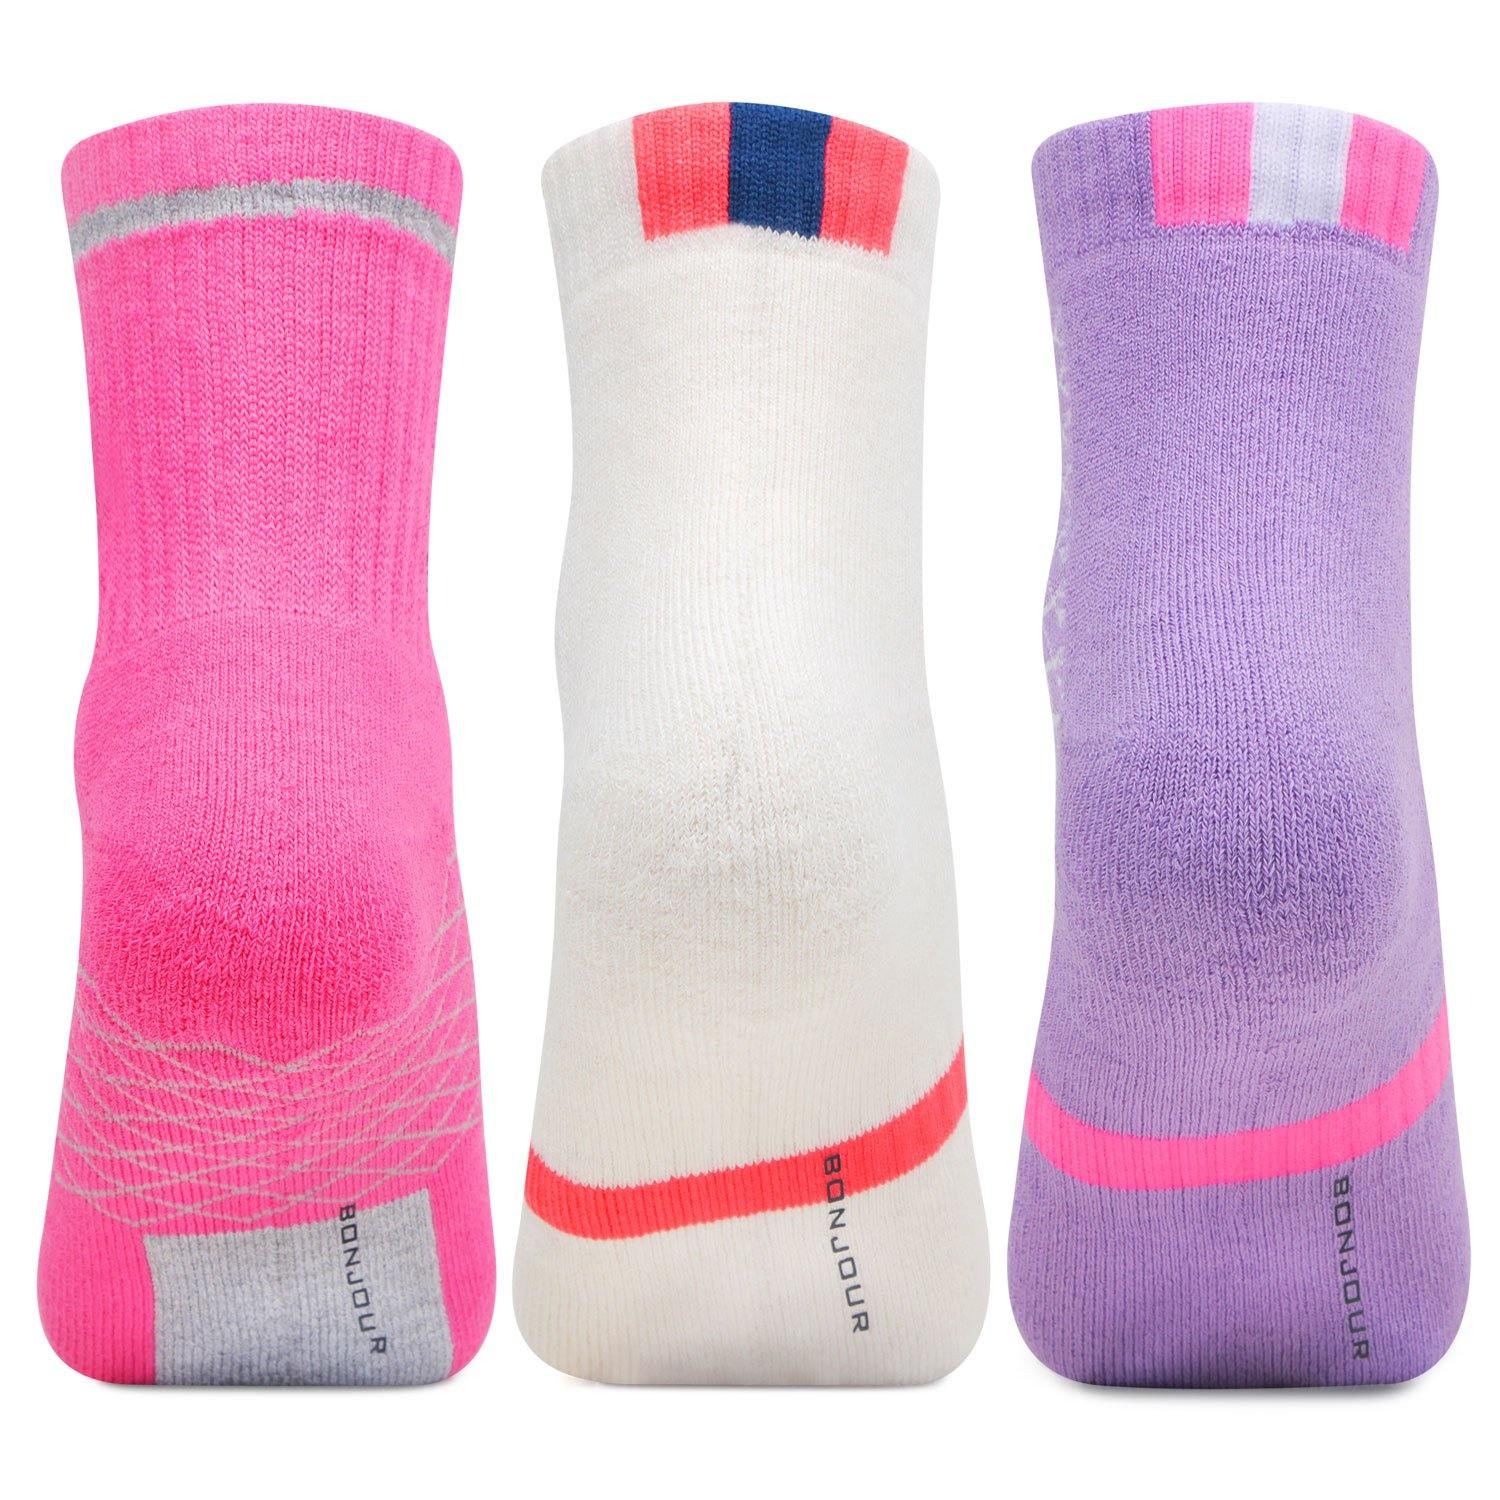 Women's Fashion Multicoloured Cotton Socks (Abstract Pattern)- Pack Of 3